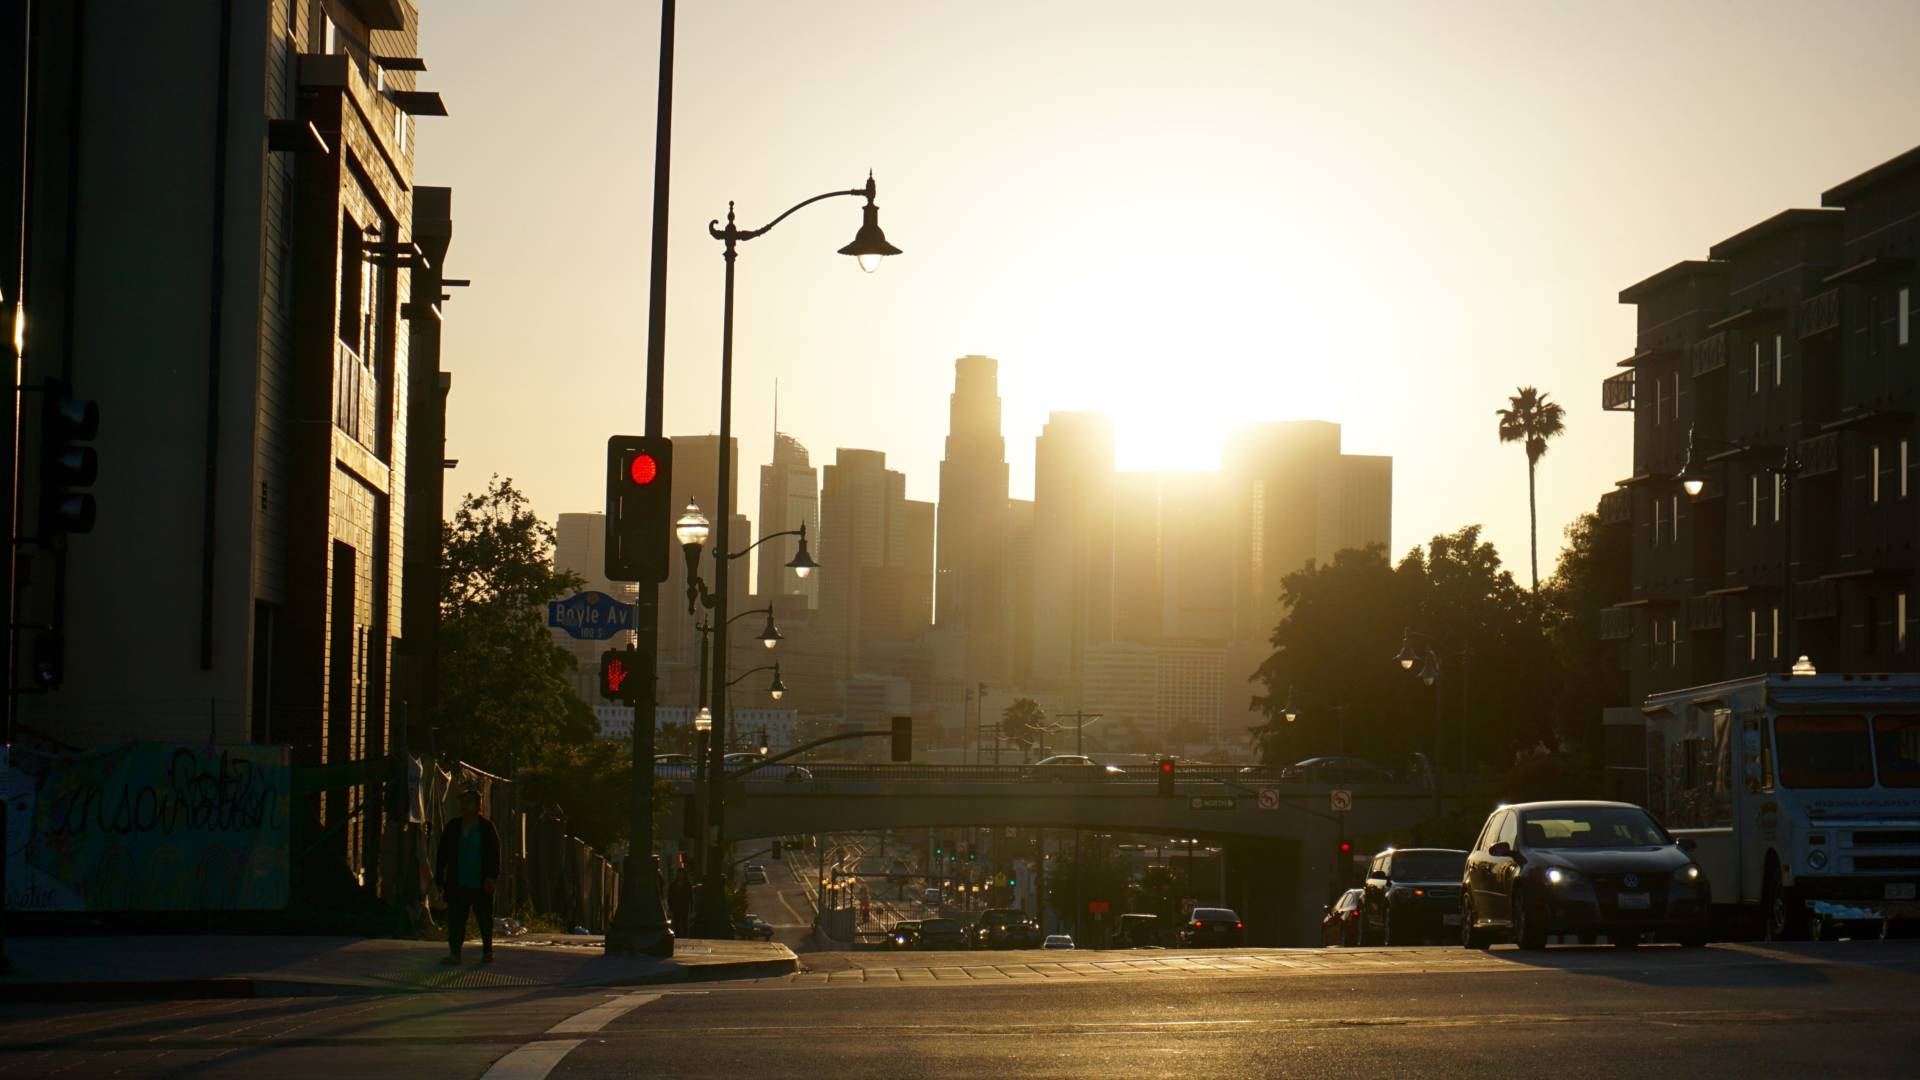 The view of downtown Los Angeles from Boyle Heights. As more neighborhoods in L.A. gentrify and see rents rise, many residents in this largely working-class Latino neighborhood fear their neighborhood could be next. Art galleries have become the focus of concern. Saul Gonzalez/KCRW